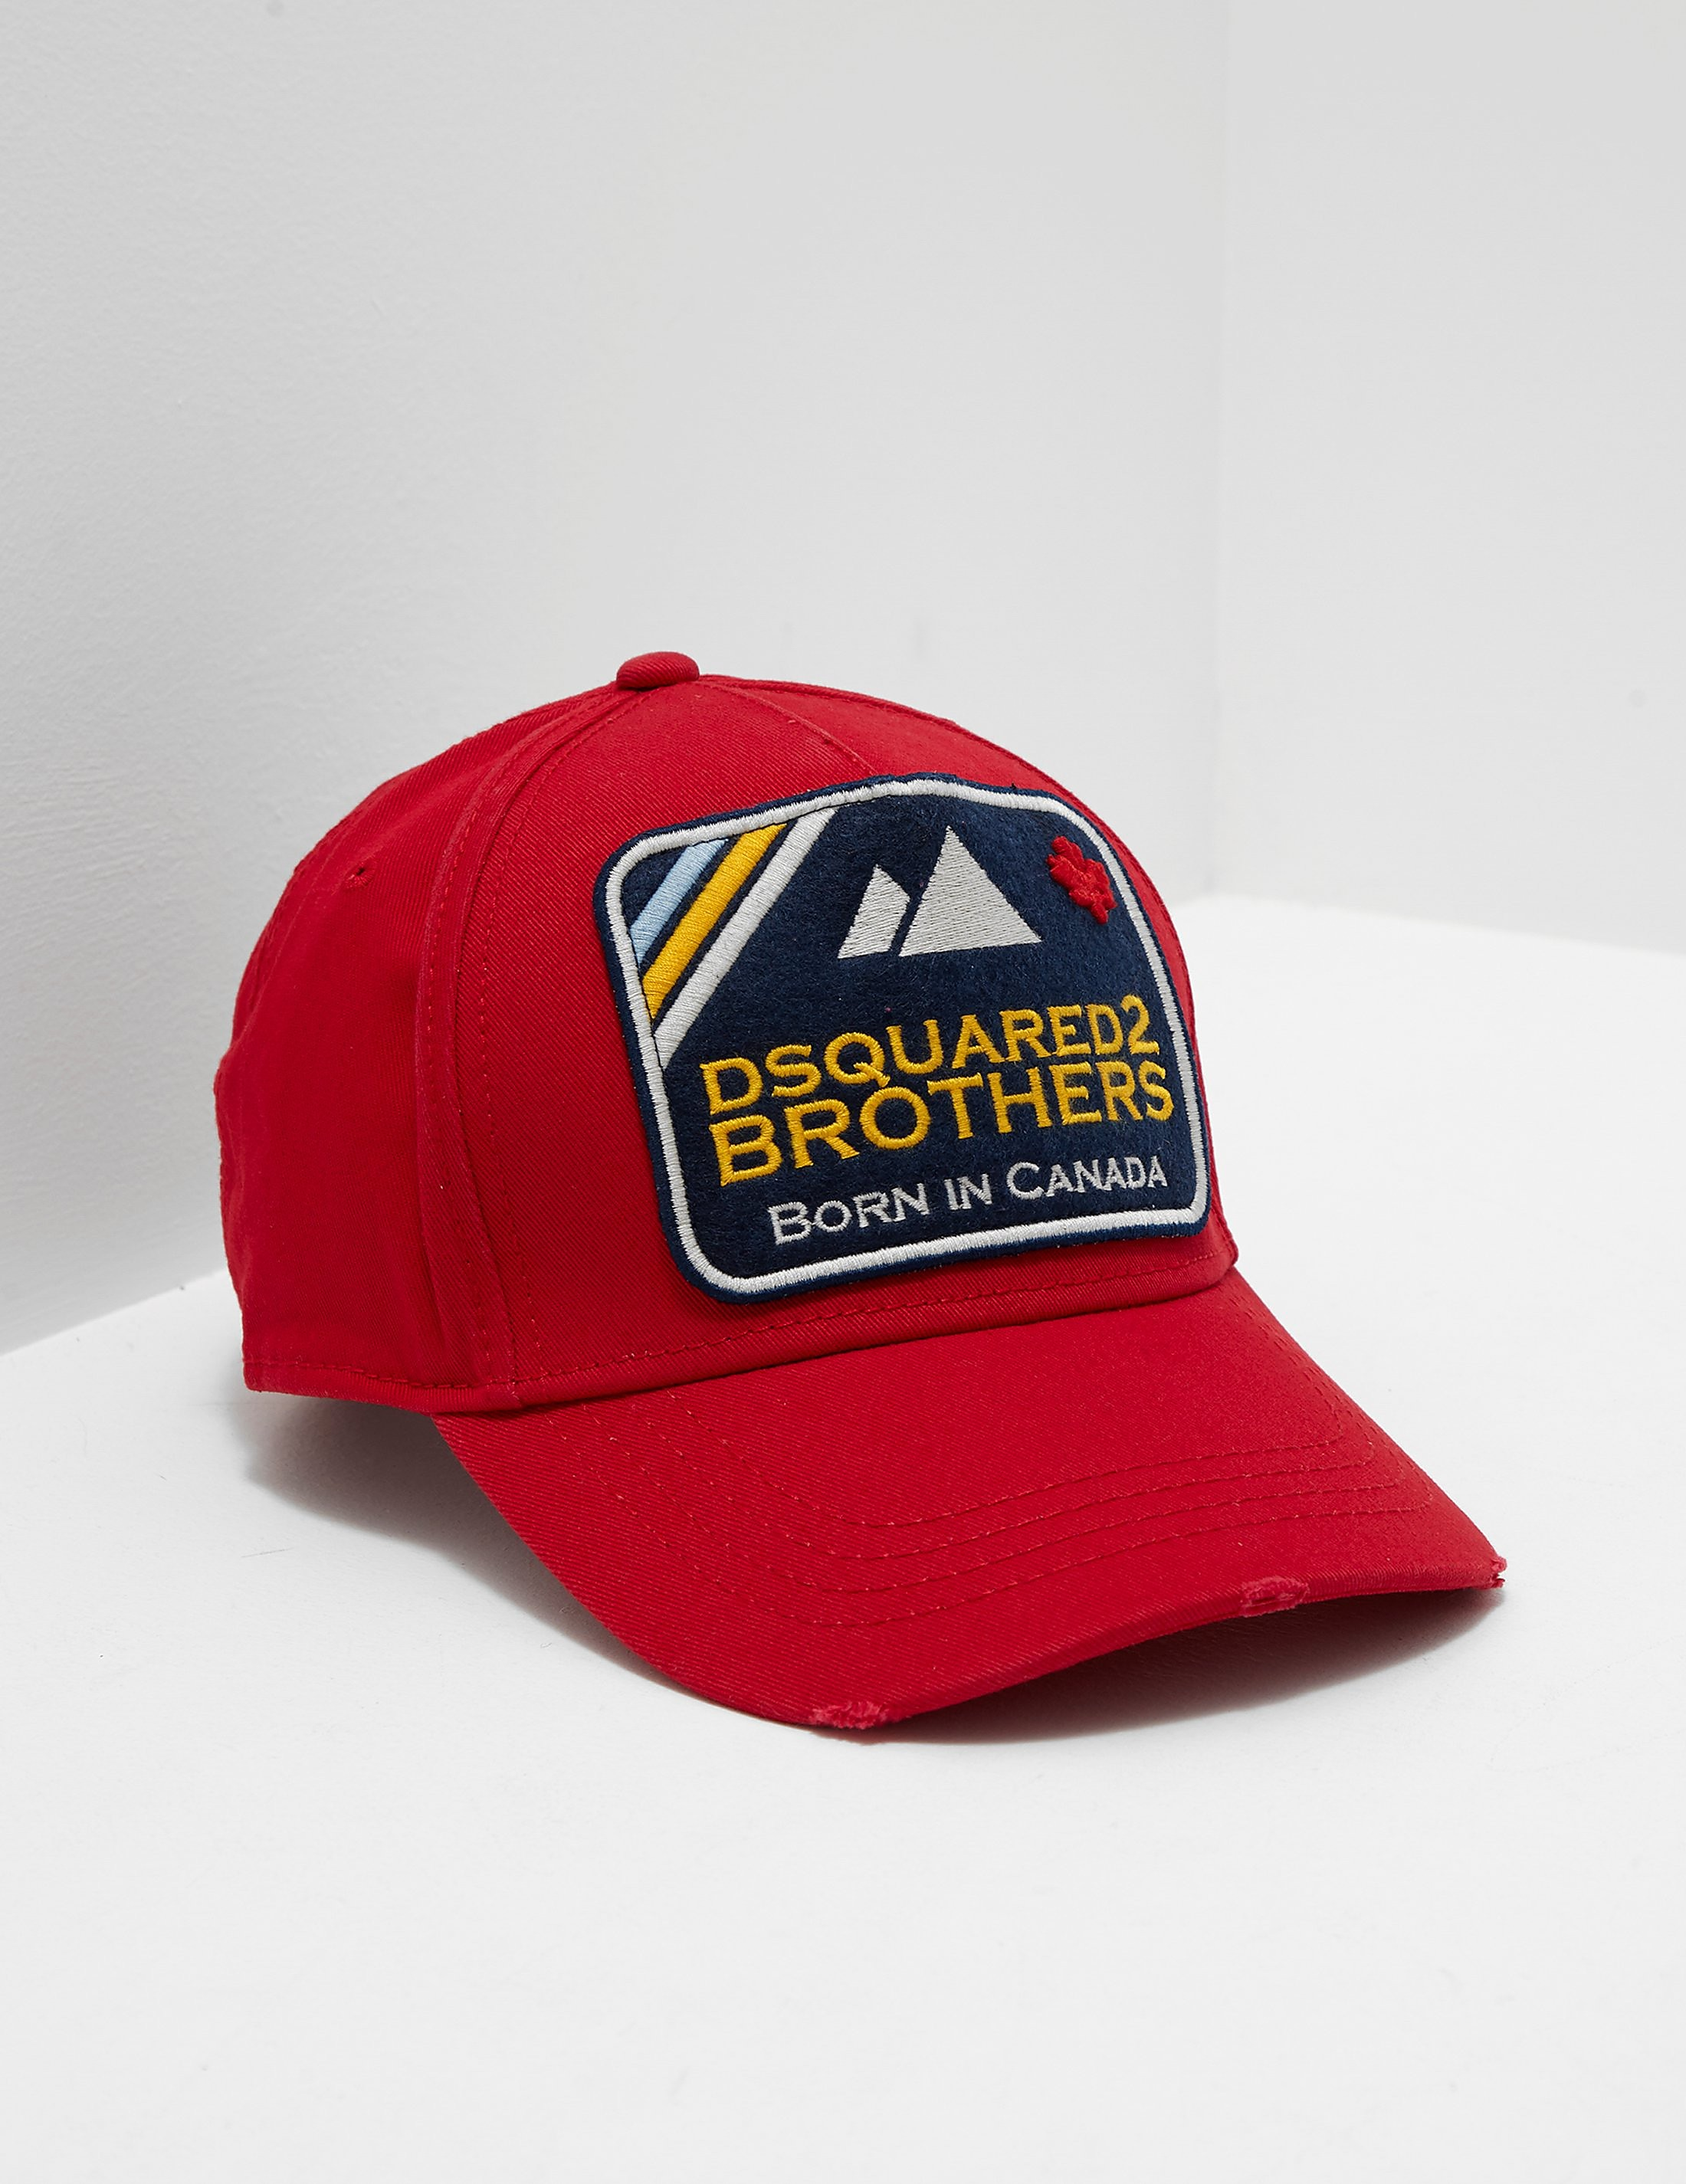 DSQUARED2 Brothers Cap